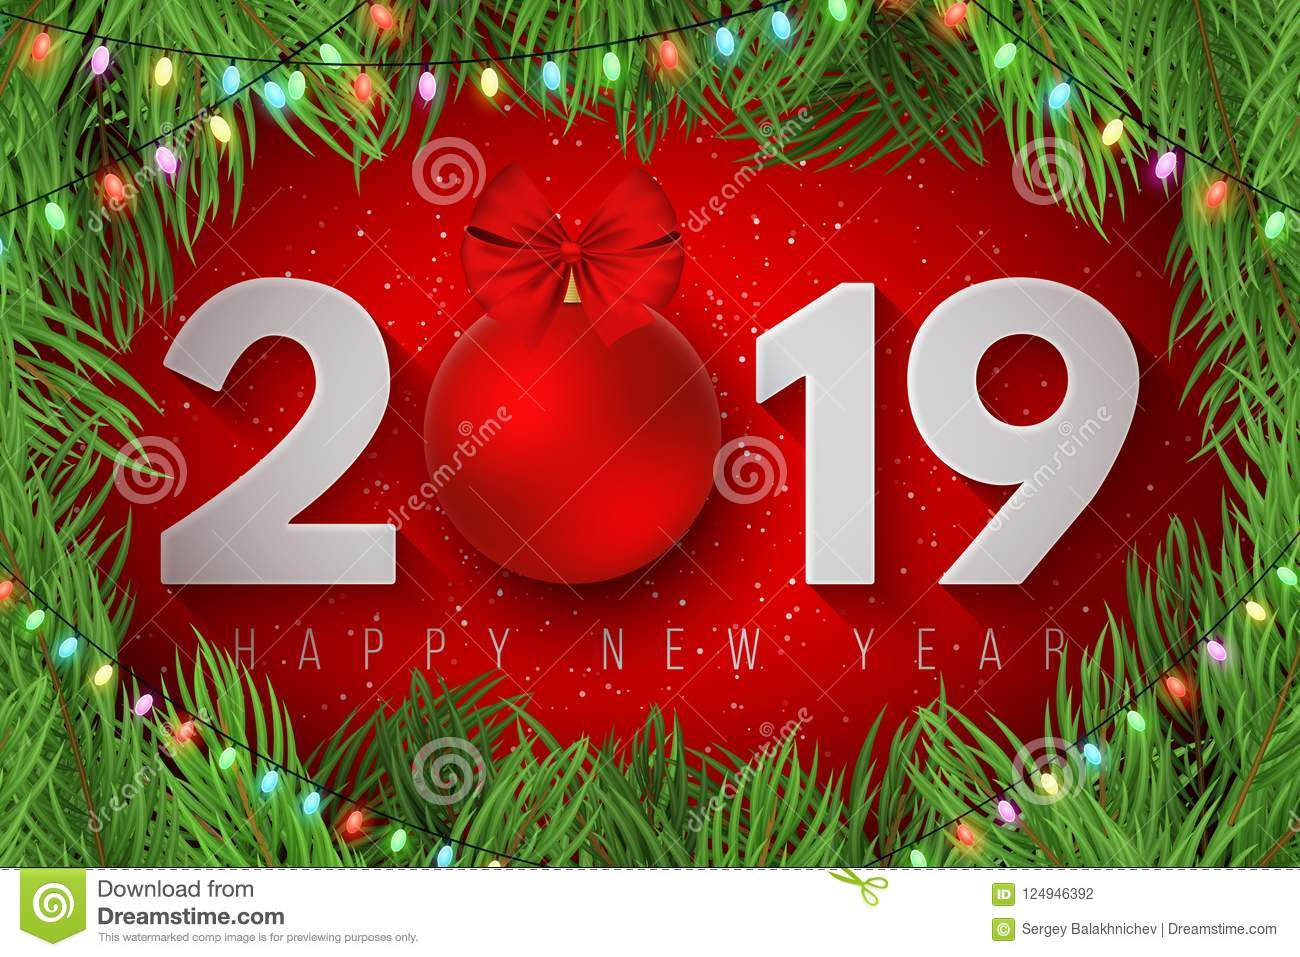 happy new year 2019 festive cover for your design snowflakes on ahappy new year 2019 festive cover for your design snowflakes on a light red background christmas tree paper numbers with a new year`s toy